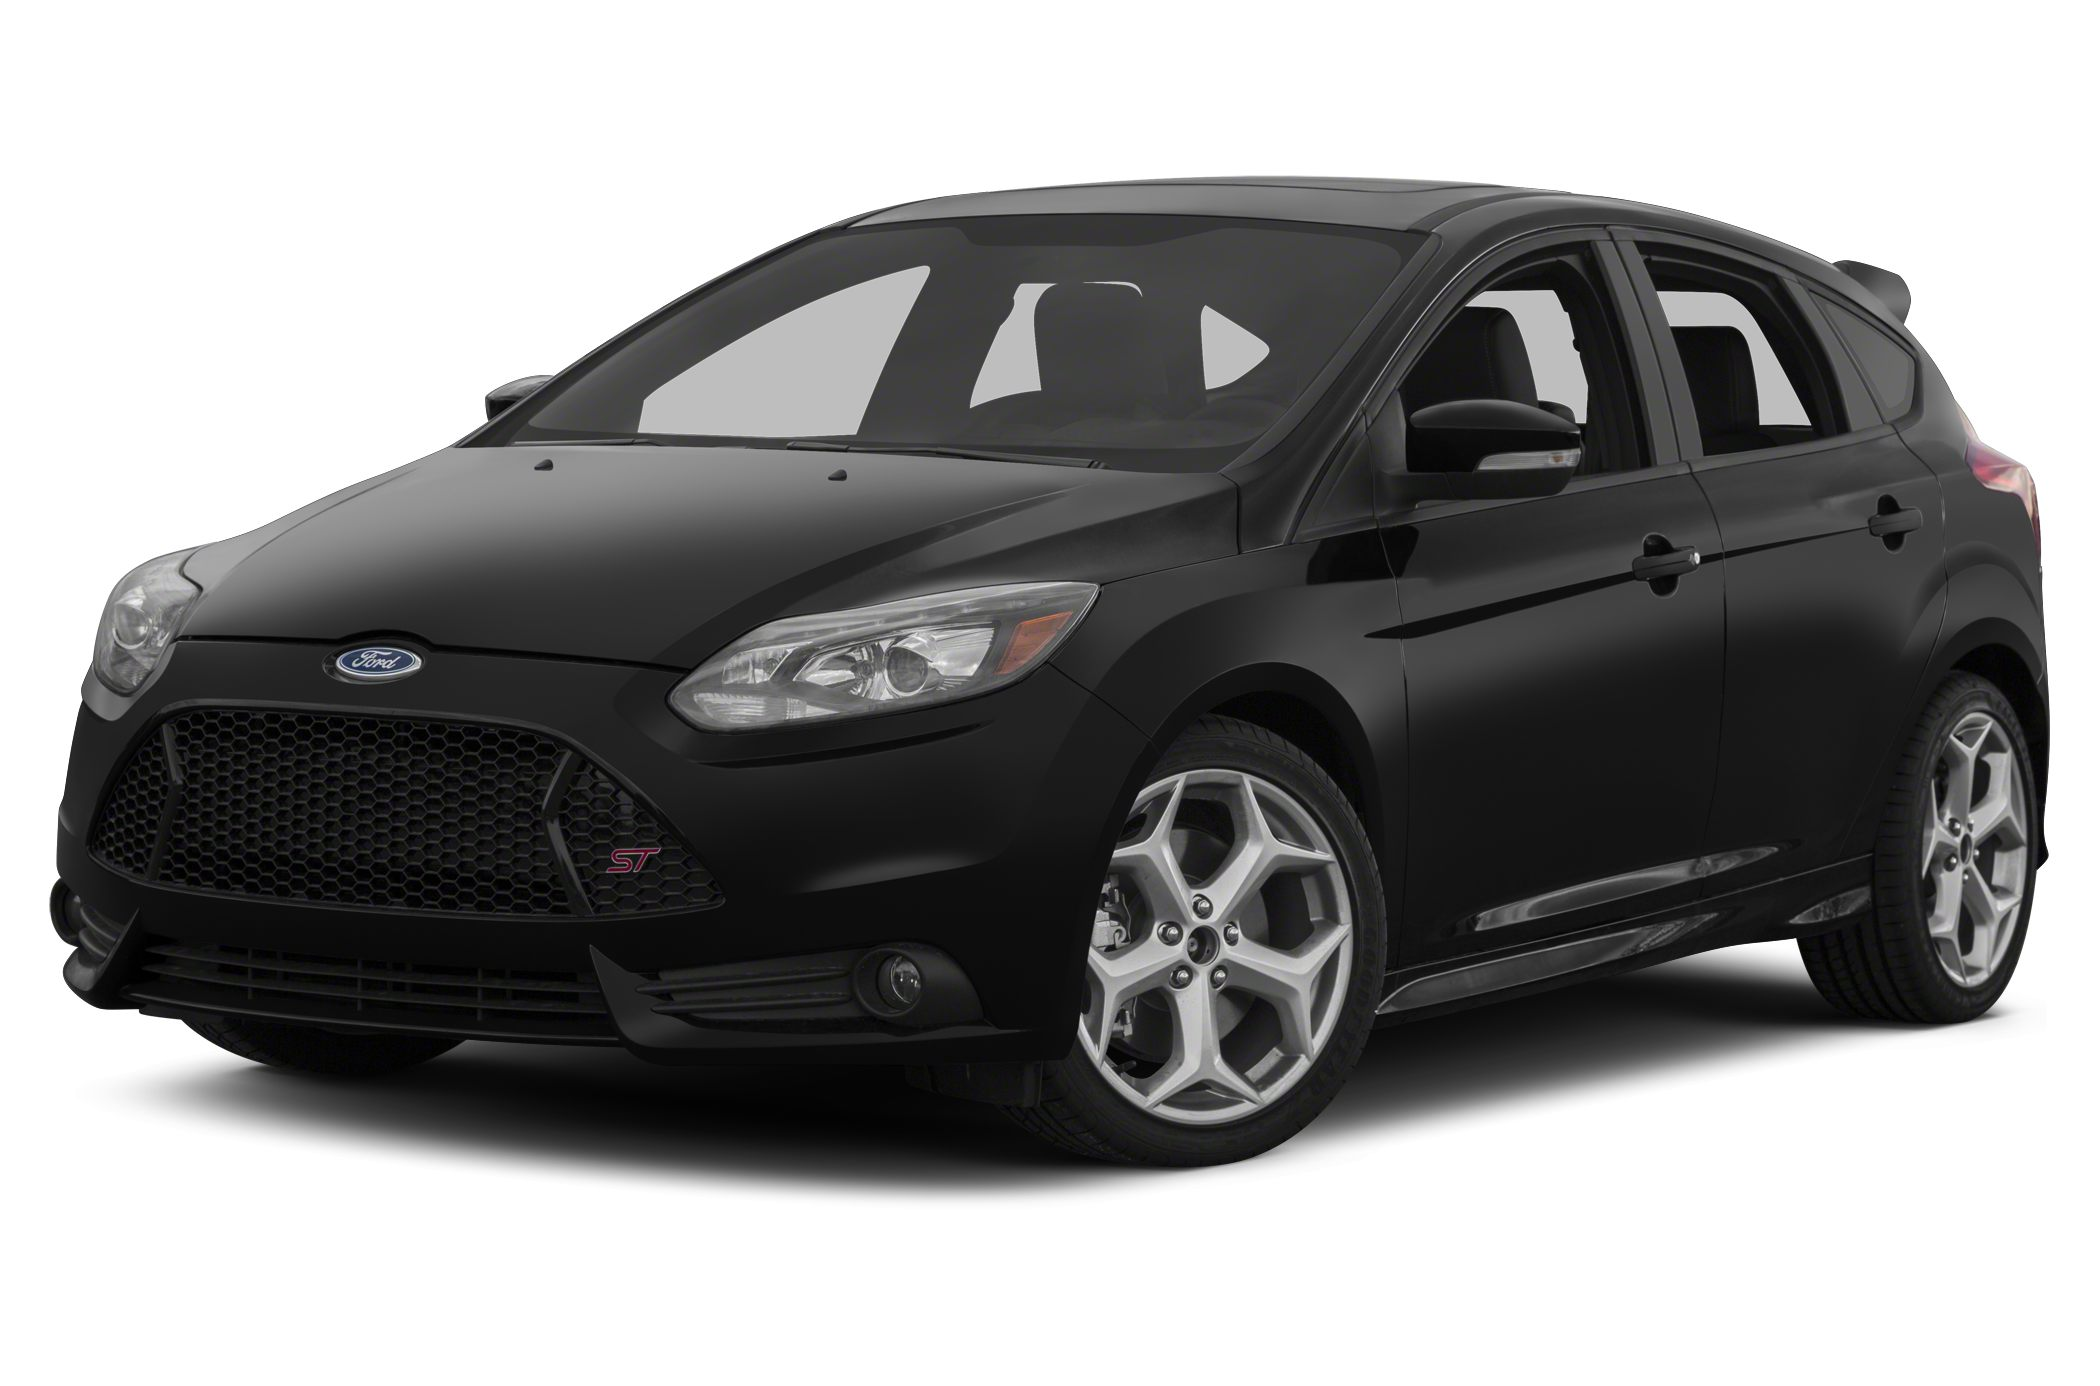 2013 Ford Focus ST Base Hatchback for sale in Clinton Township for $20,990 with 40,014 miles.